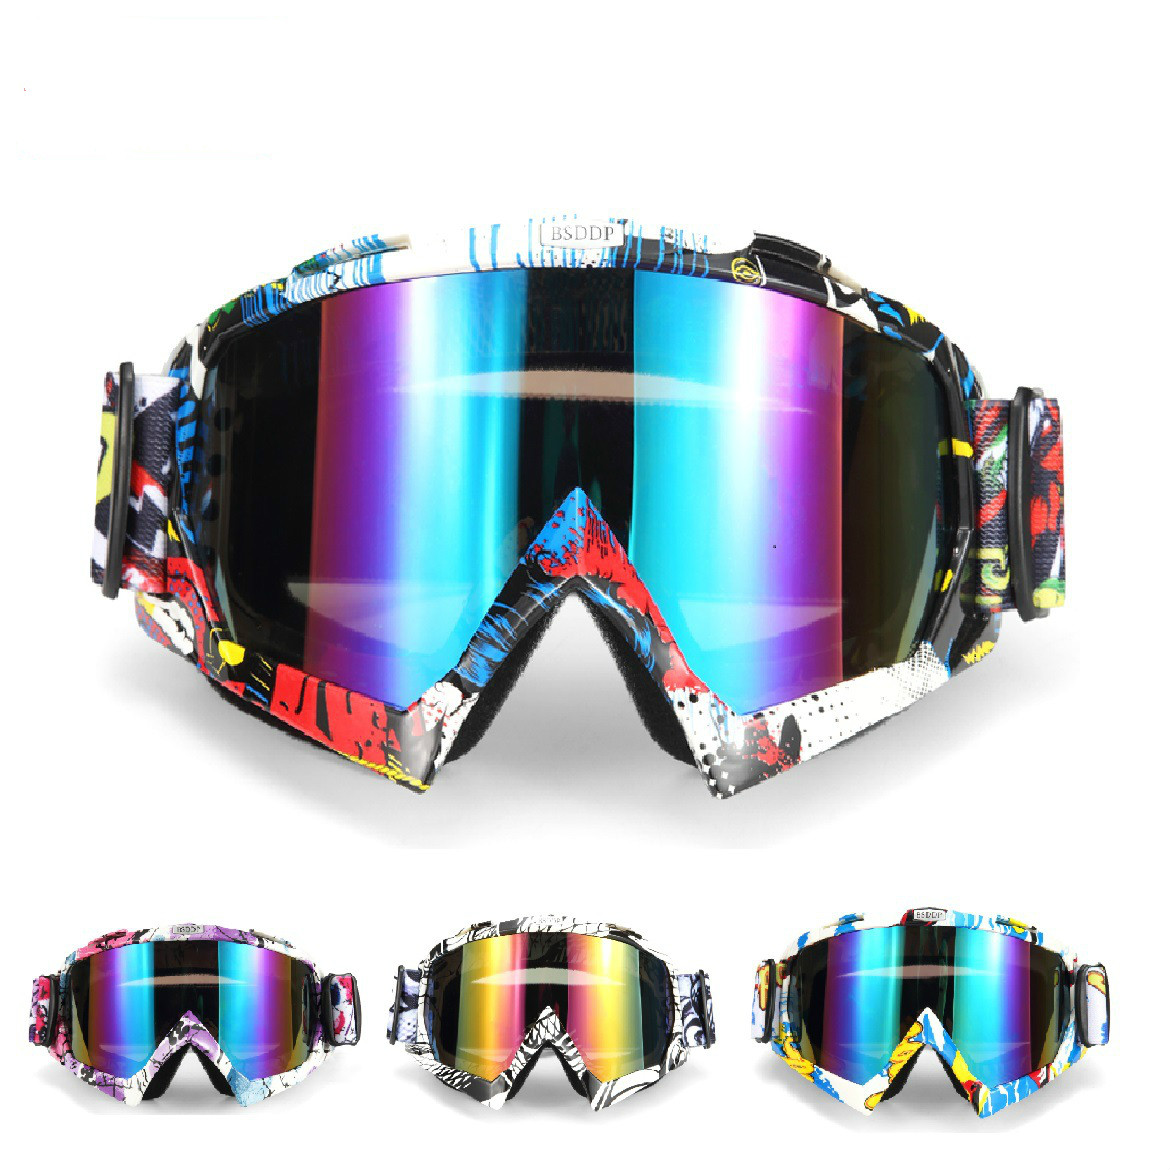 Outdoor Sports Off road Motorcycle Helmet Goggles Windshield Windproof Sandproof Cycling Glasses Riding Equipment|Cycling Eyewear| |  -